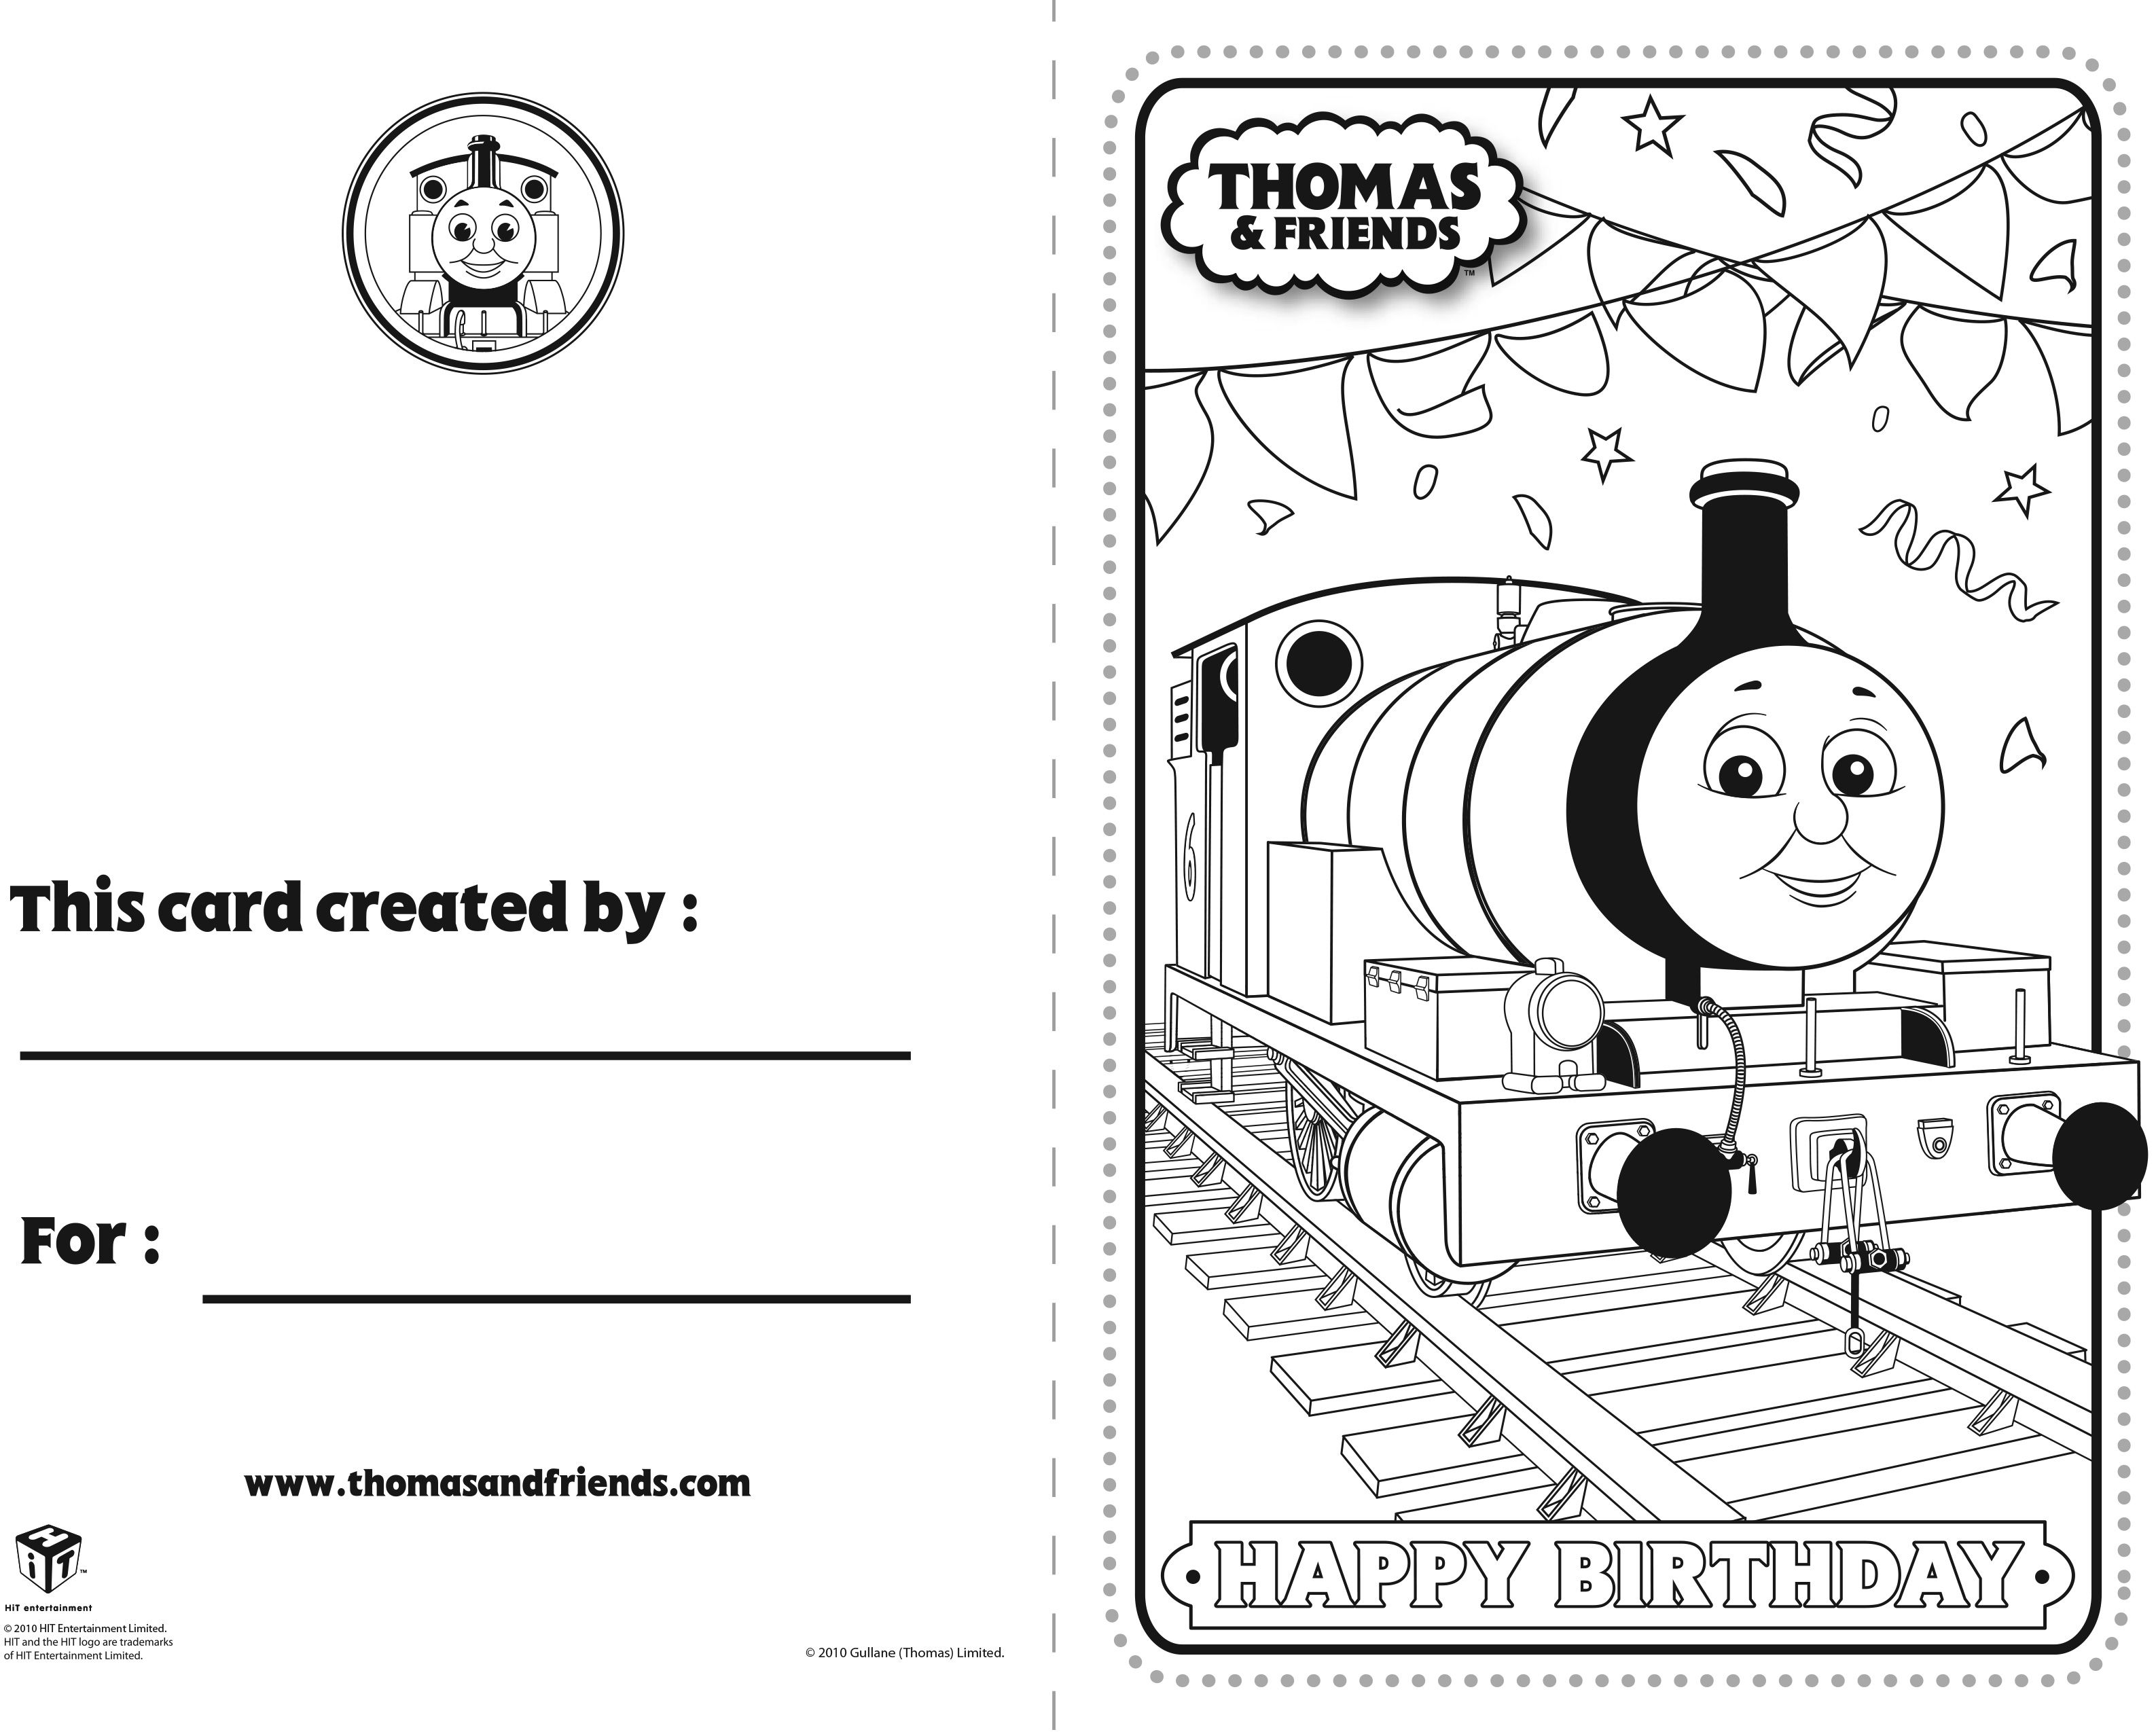 Thomas And Friends Birthday Card Percy Thomasandfriends